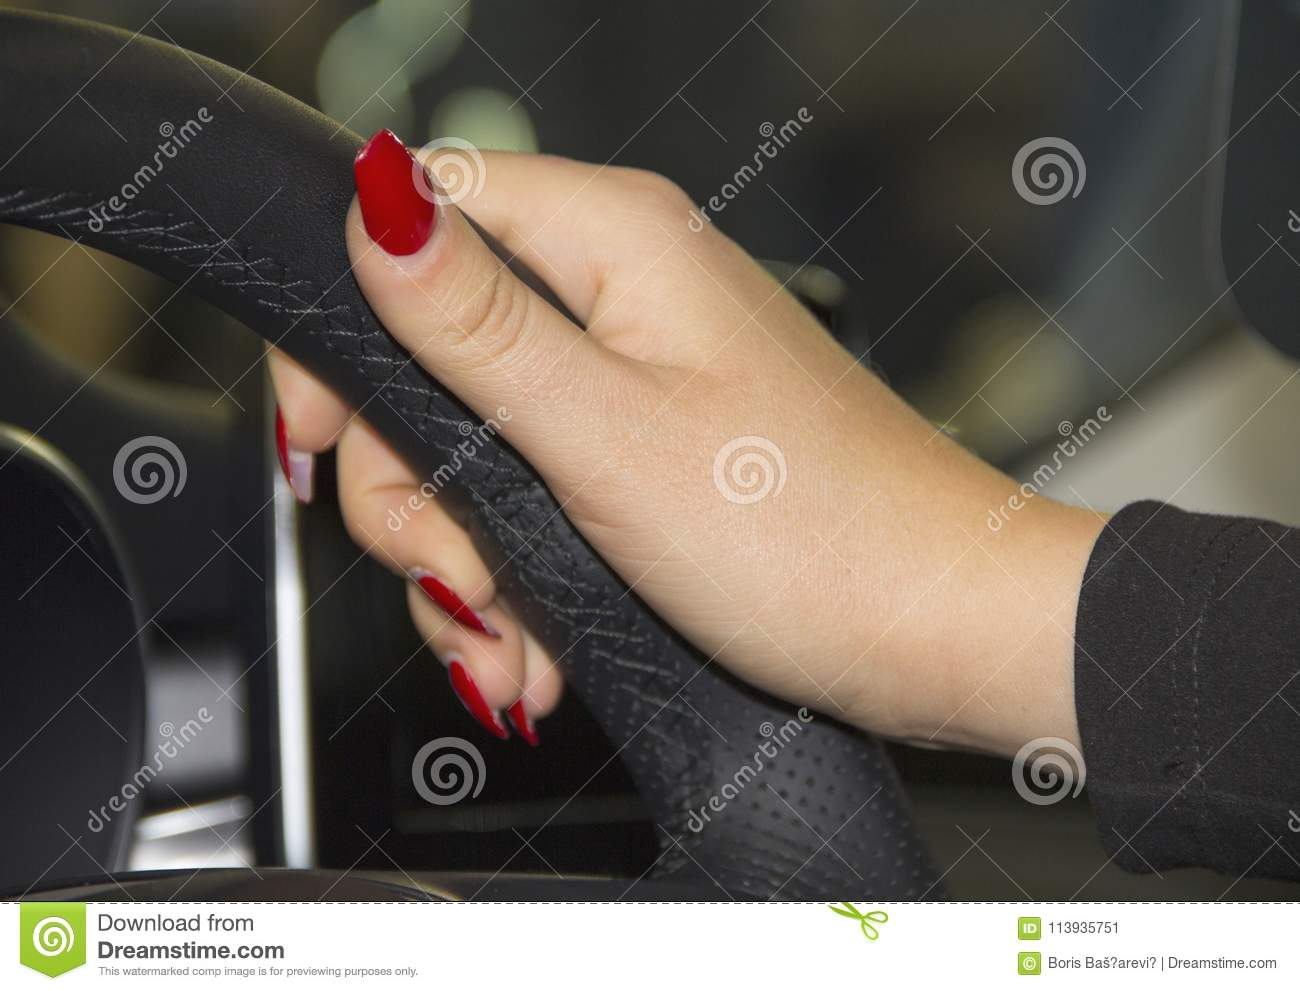 The Close Up Of Woman Hand With Red Nails On The Steering Wheel Stock Image Image Of Navigation Event 113935751